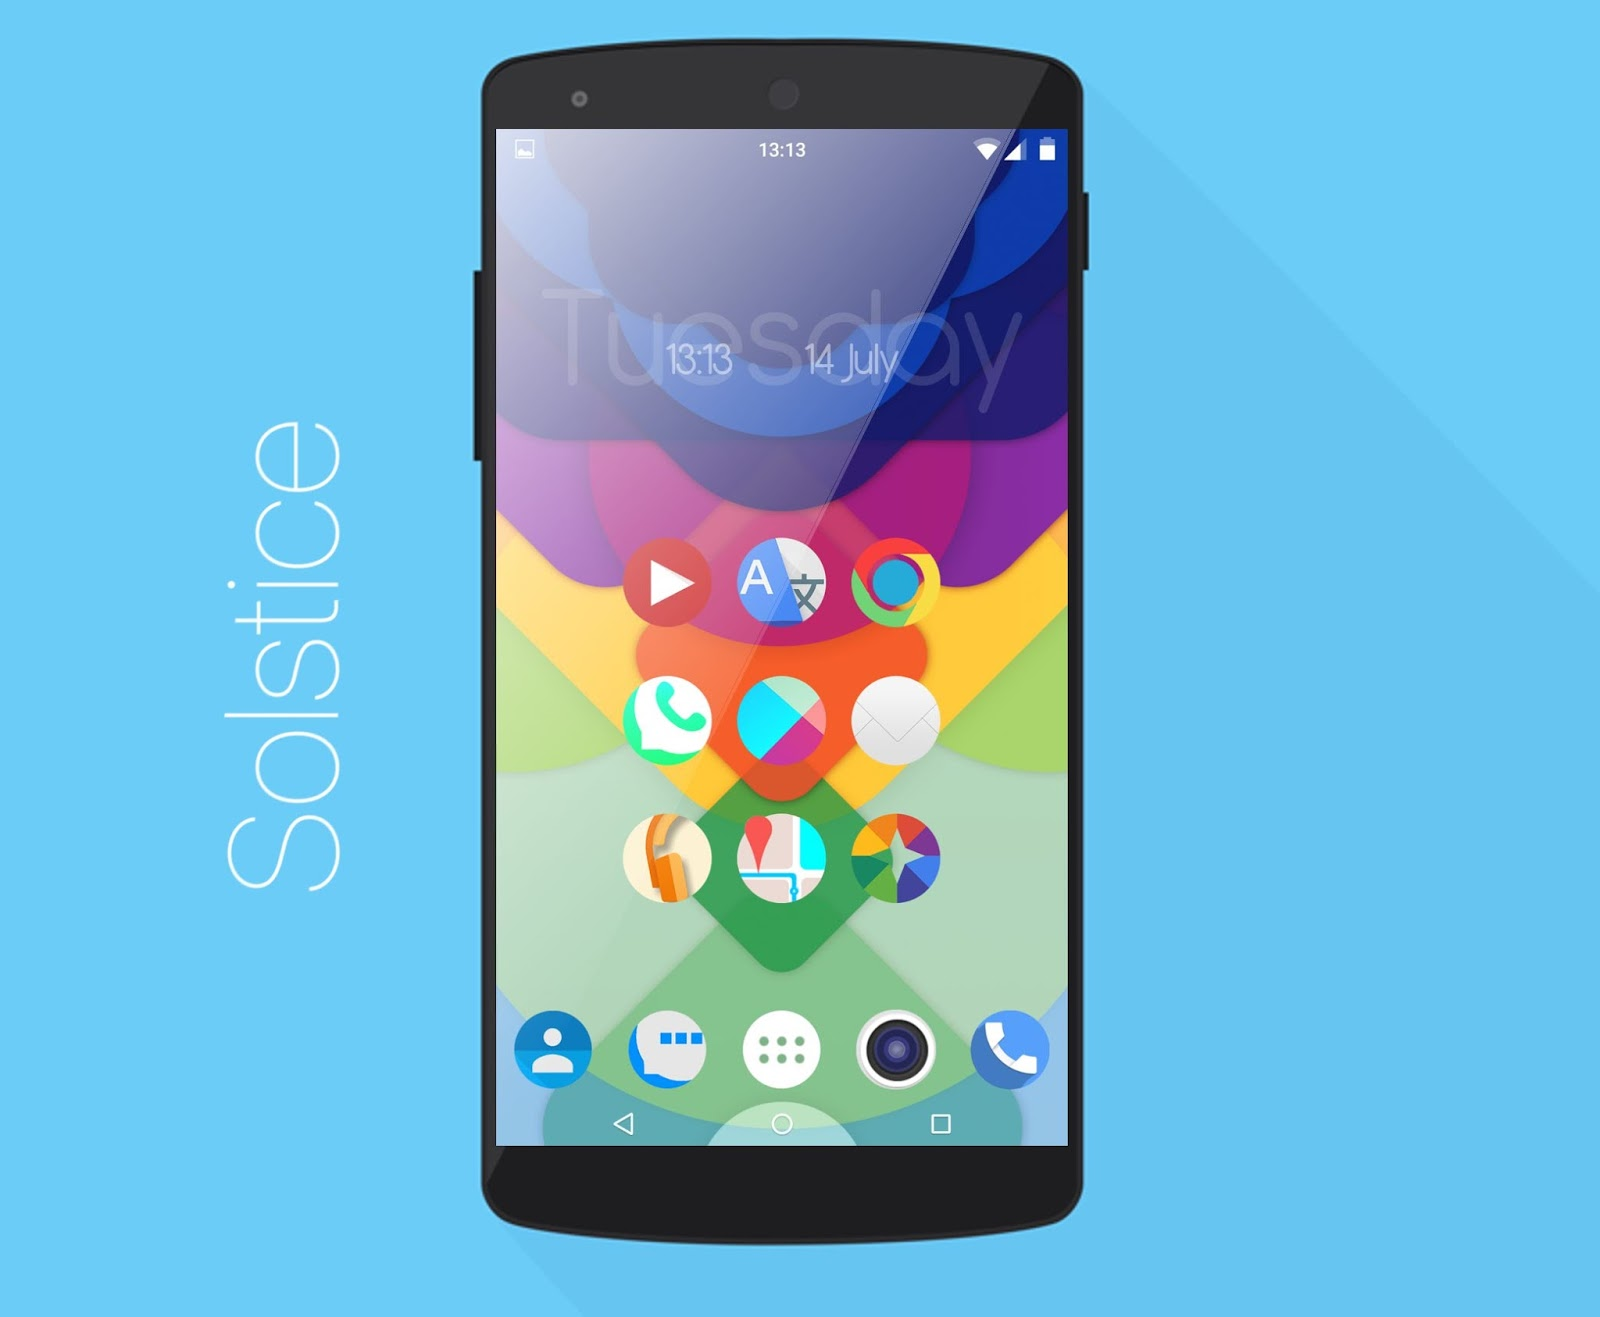 Icon Pack Android Solstice Icon Pack Theme Hd To Nova Launcher